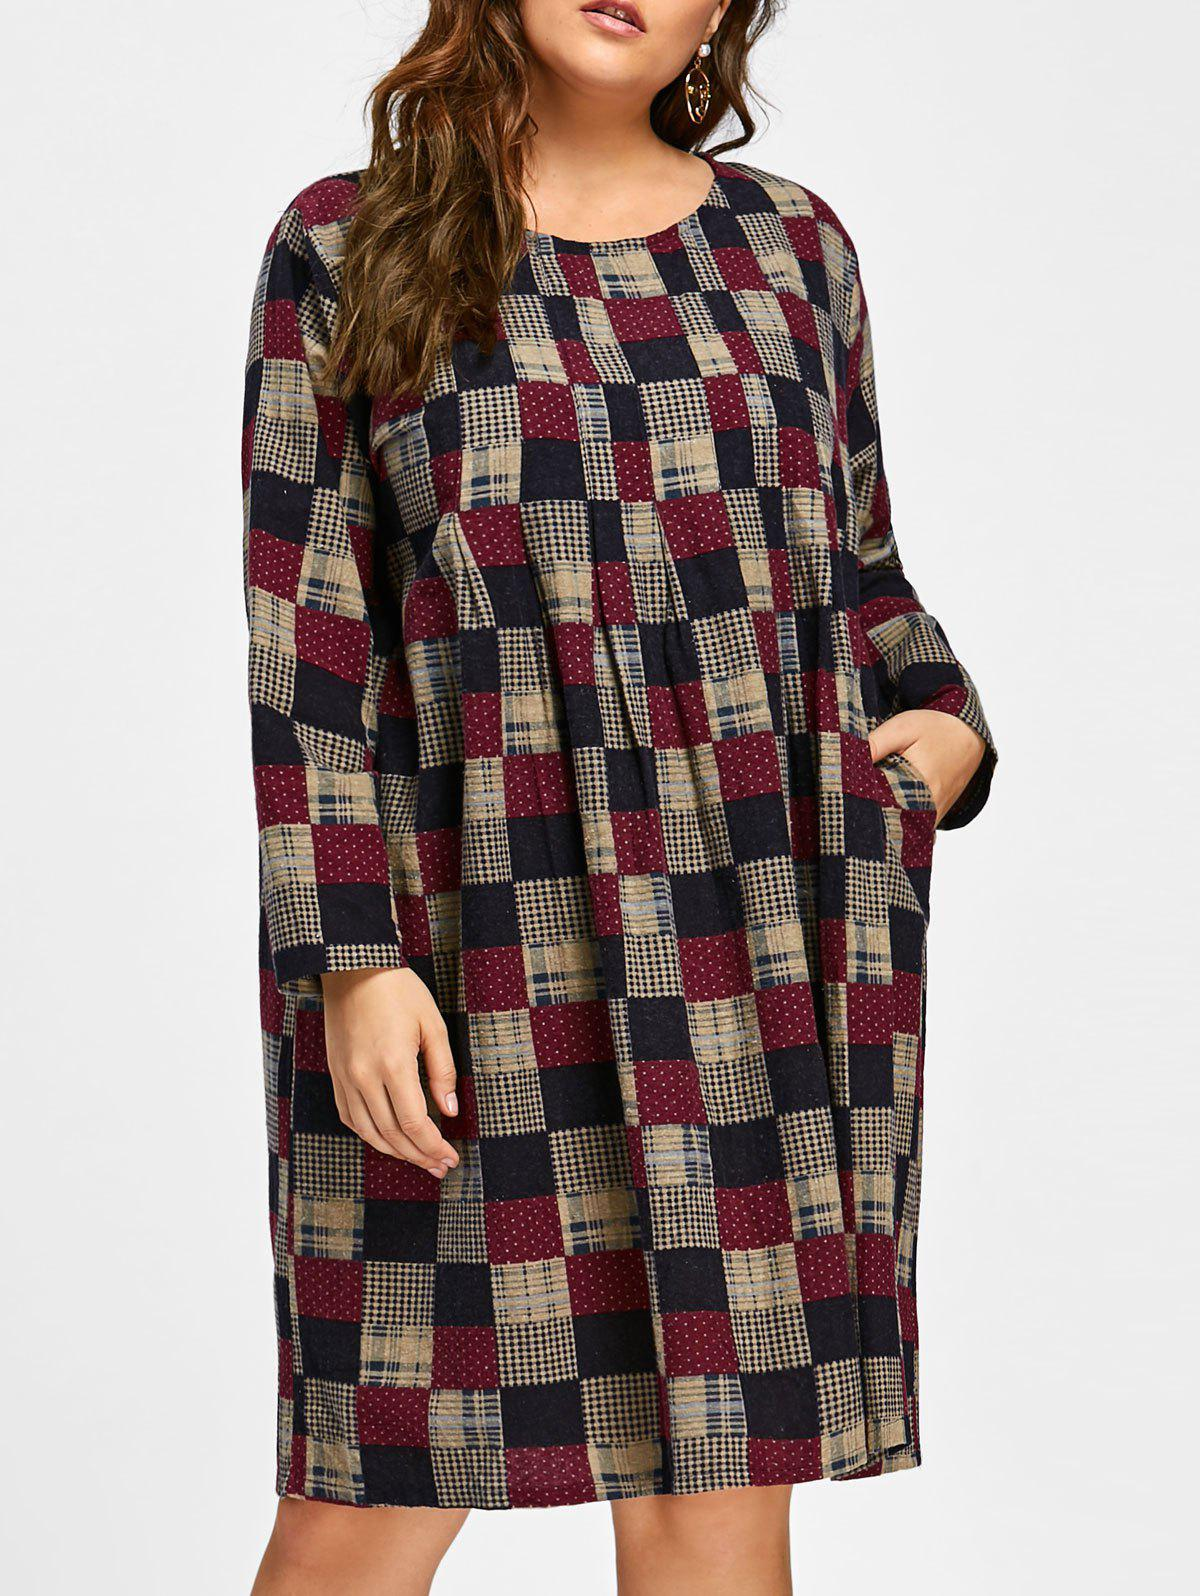 Plus Size Plaid High Waist Loose Smock DressWOMEN<br><br>Size: ONE SIZE; Color: MULTICOLOR; Style: Casual; Material: Polyester; Silhouette: A-Line; Dresses Length: Knee-Length; Neckline: Round Collar; Sleeve Length: Long Sleeves; Waist: High Waisted; Pattern Type: Plaid; With Belt: No; Season: Fall,Winter; Weight: 0.4200kg; Package Contents: 1 x Dress;